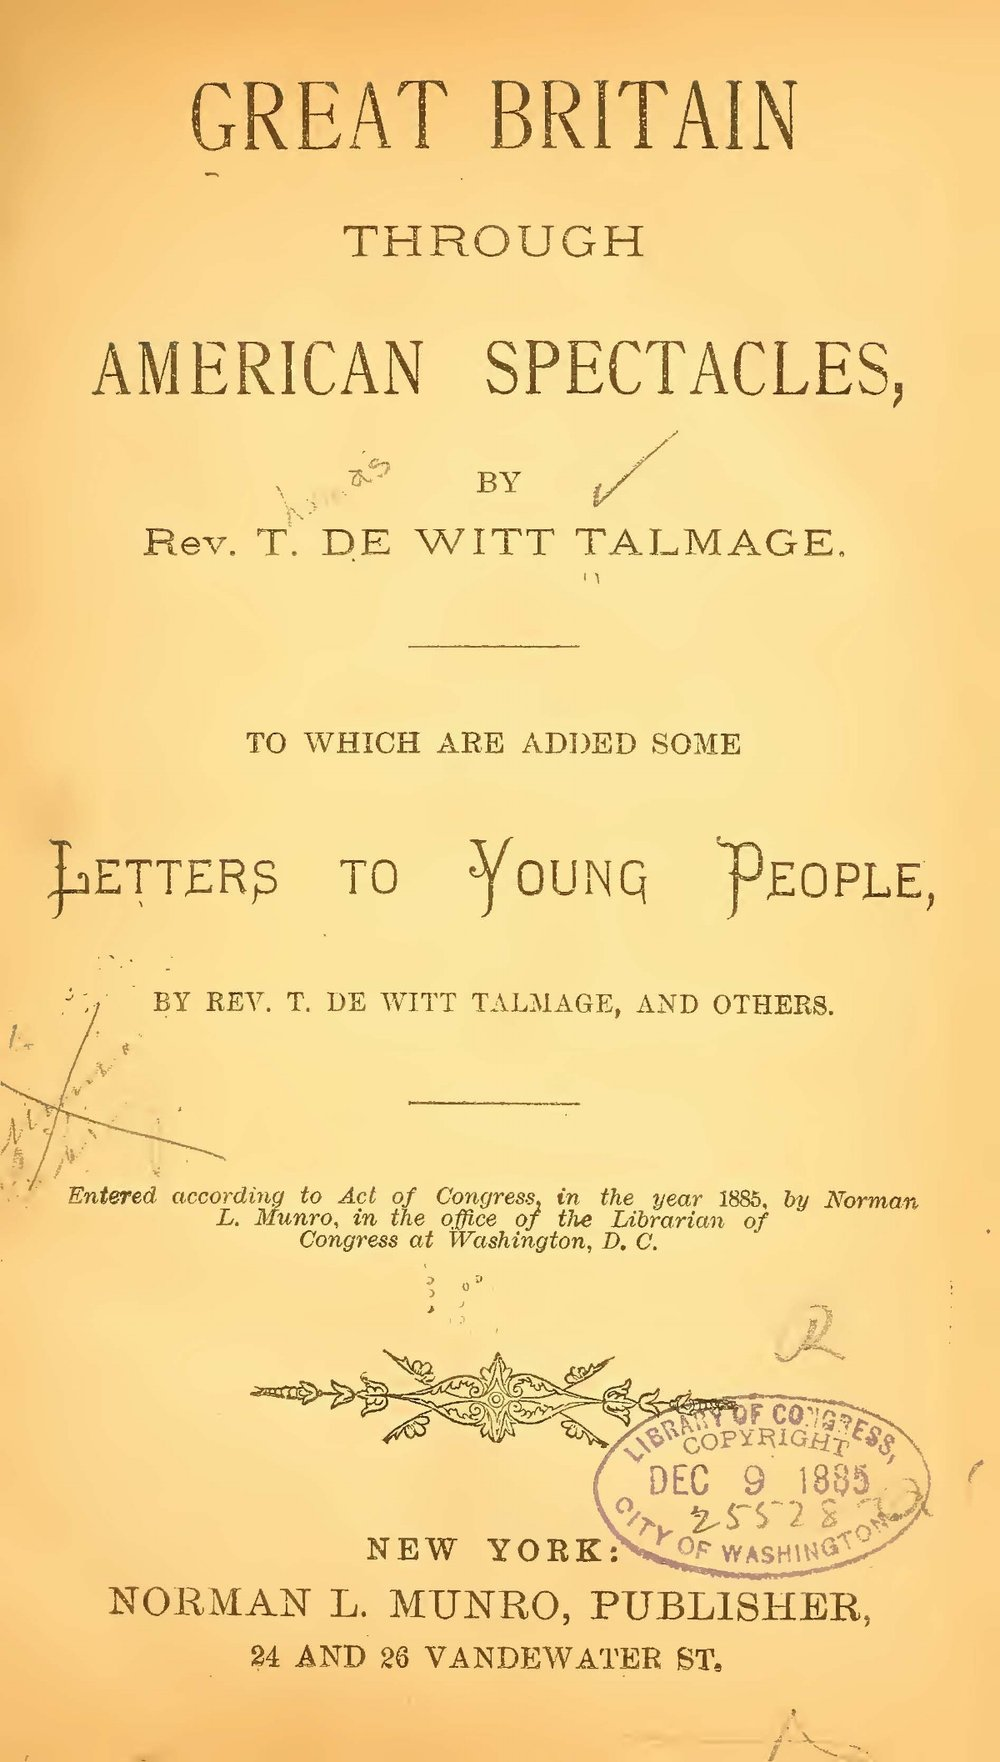 Talmage, Thomas De Witt, Great Britain Through American Spectacles Title Page.jpg